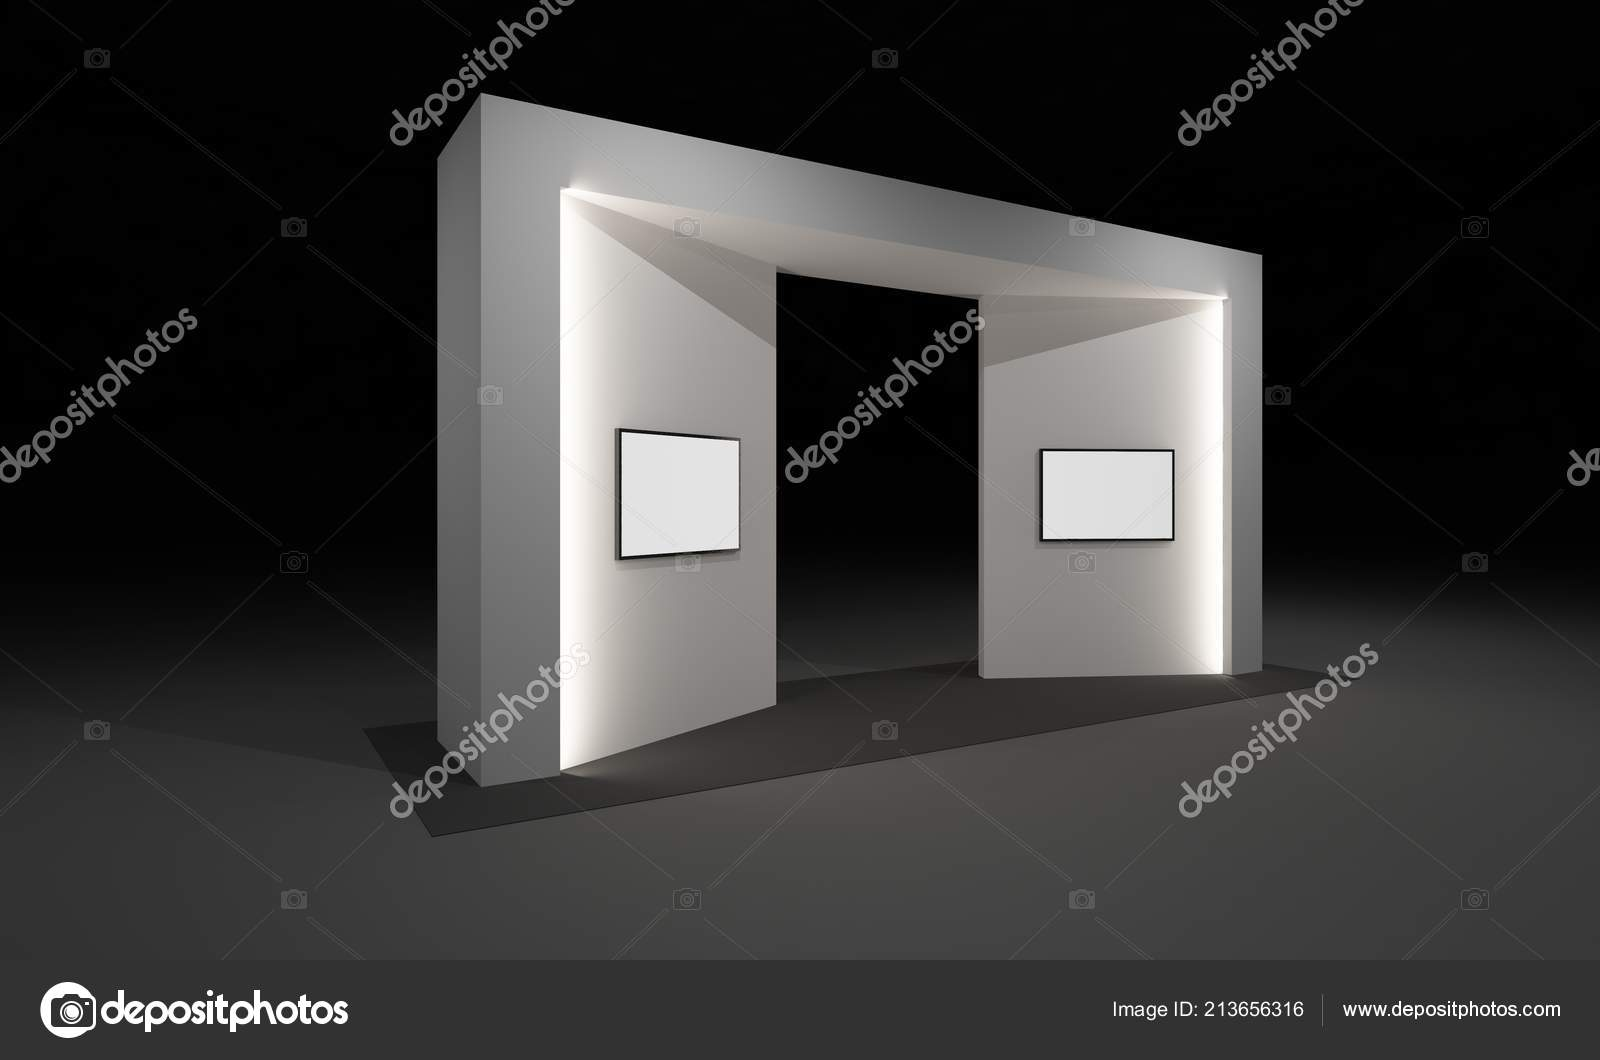 Exhibition Booth Icon : Stock illustration sofa icon brown colored yellow outlines